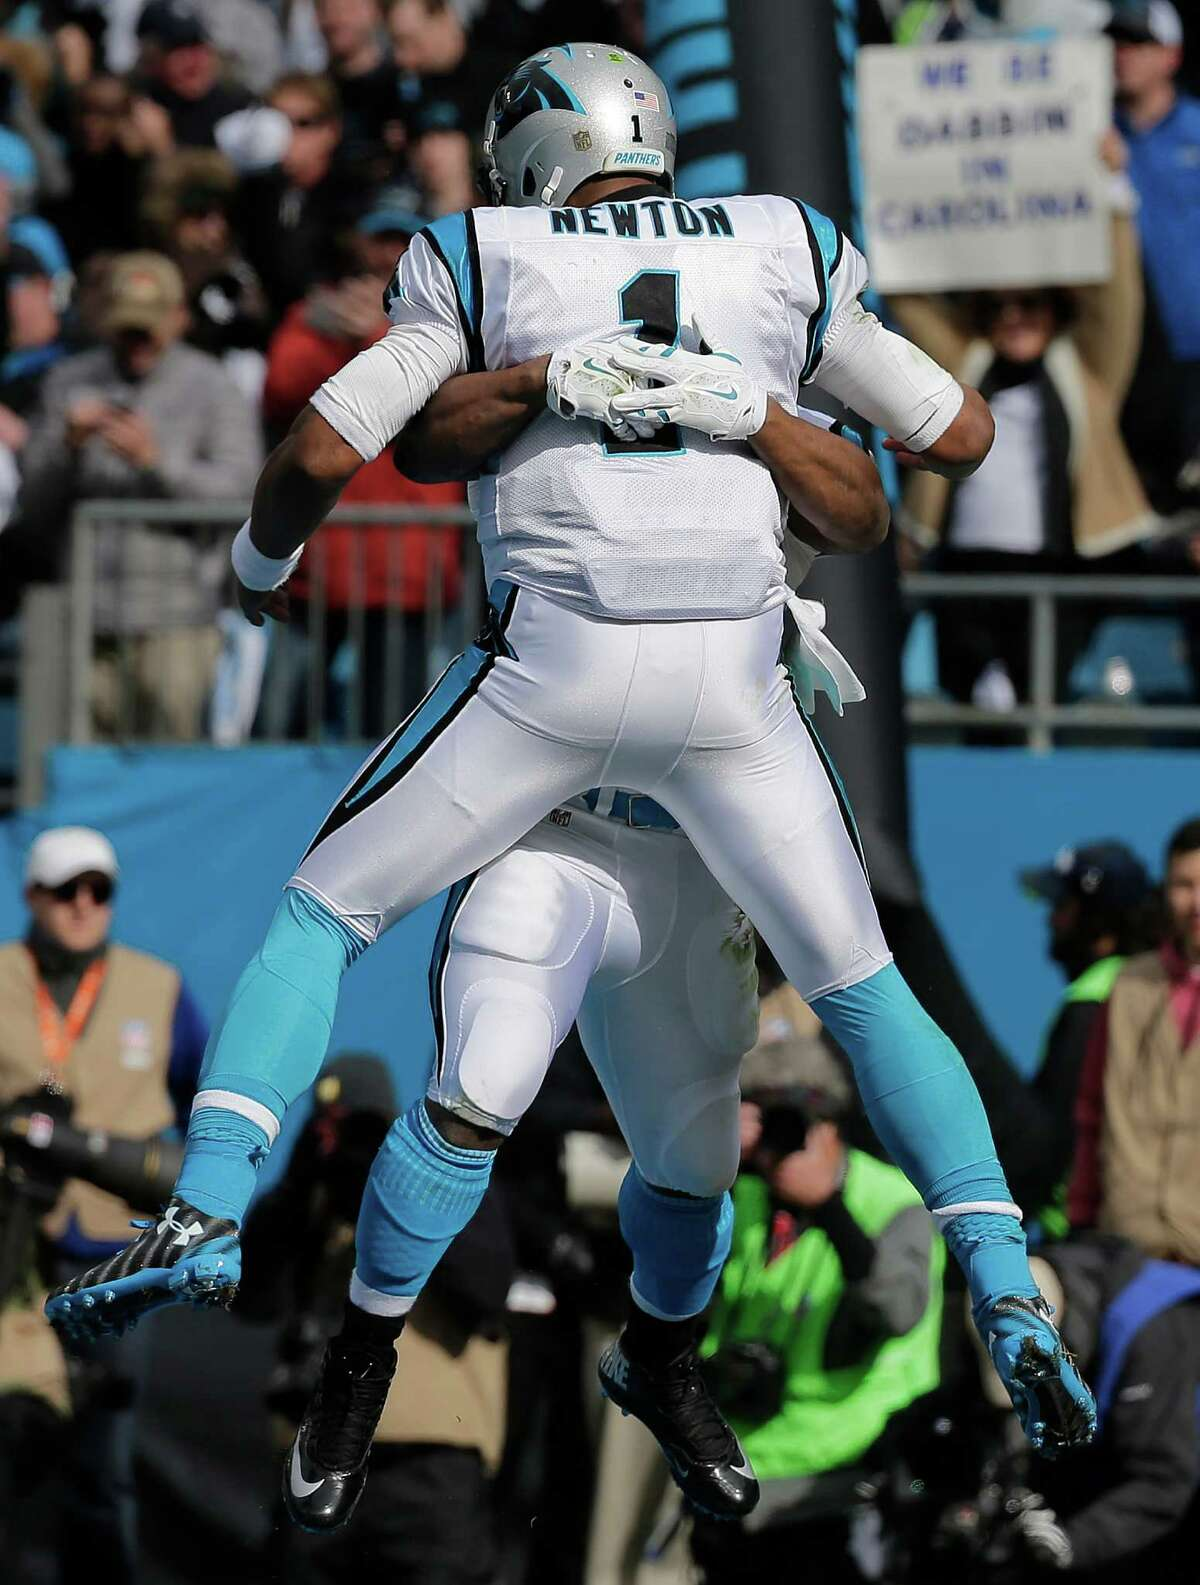 Carolina Panthers quarterback Cam Newton (1) celebrates with Carolina Panthers running back Jonathan Stewart (28) after Stewart scored a touchdown against the Seattle Seahawks during the first half of an NFL divisional playoff football game, Sunday, Jan. 17, 2016, in Charlotte, N.C. (AP Photo/Chuck Burton) ORG XMIT: NCMS104